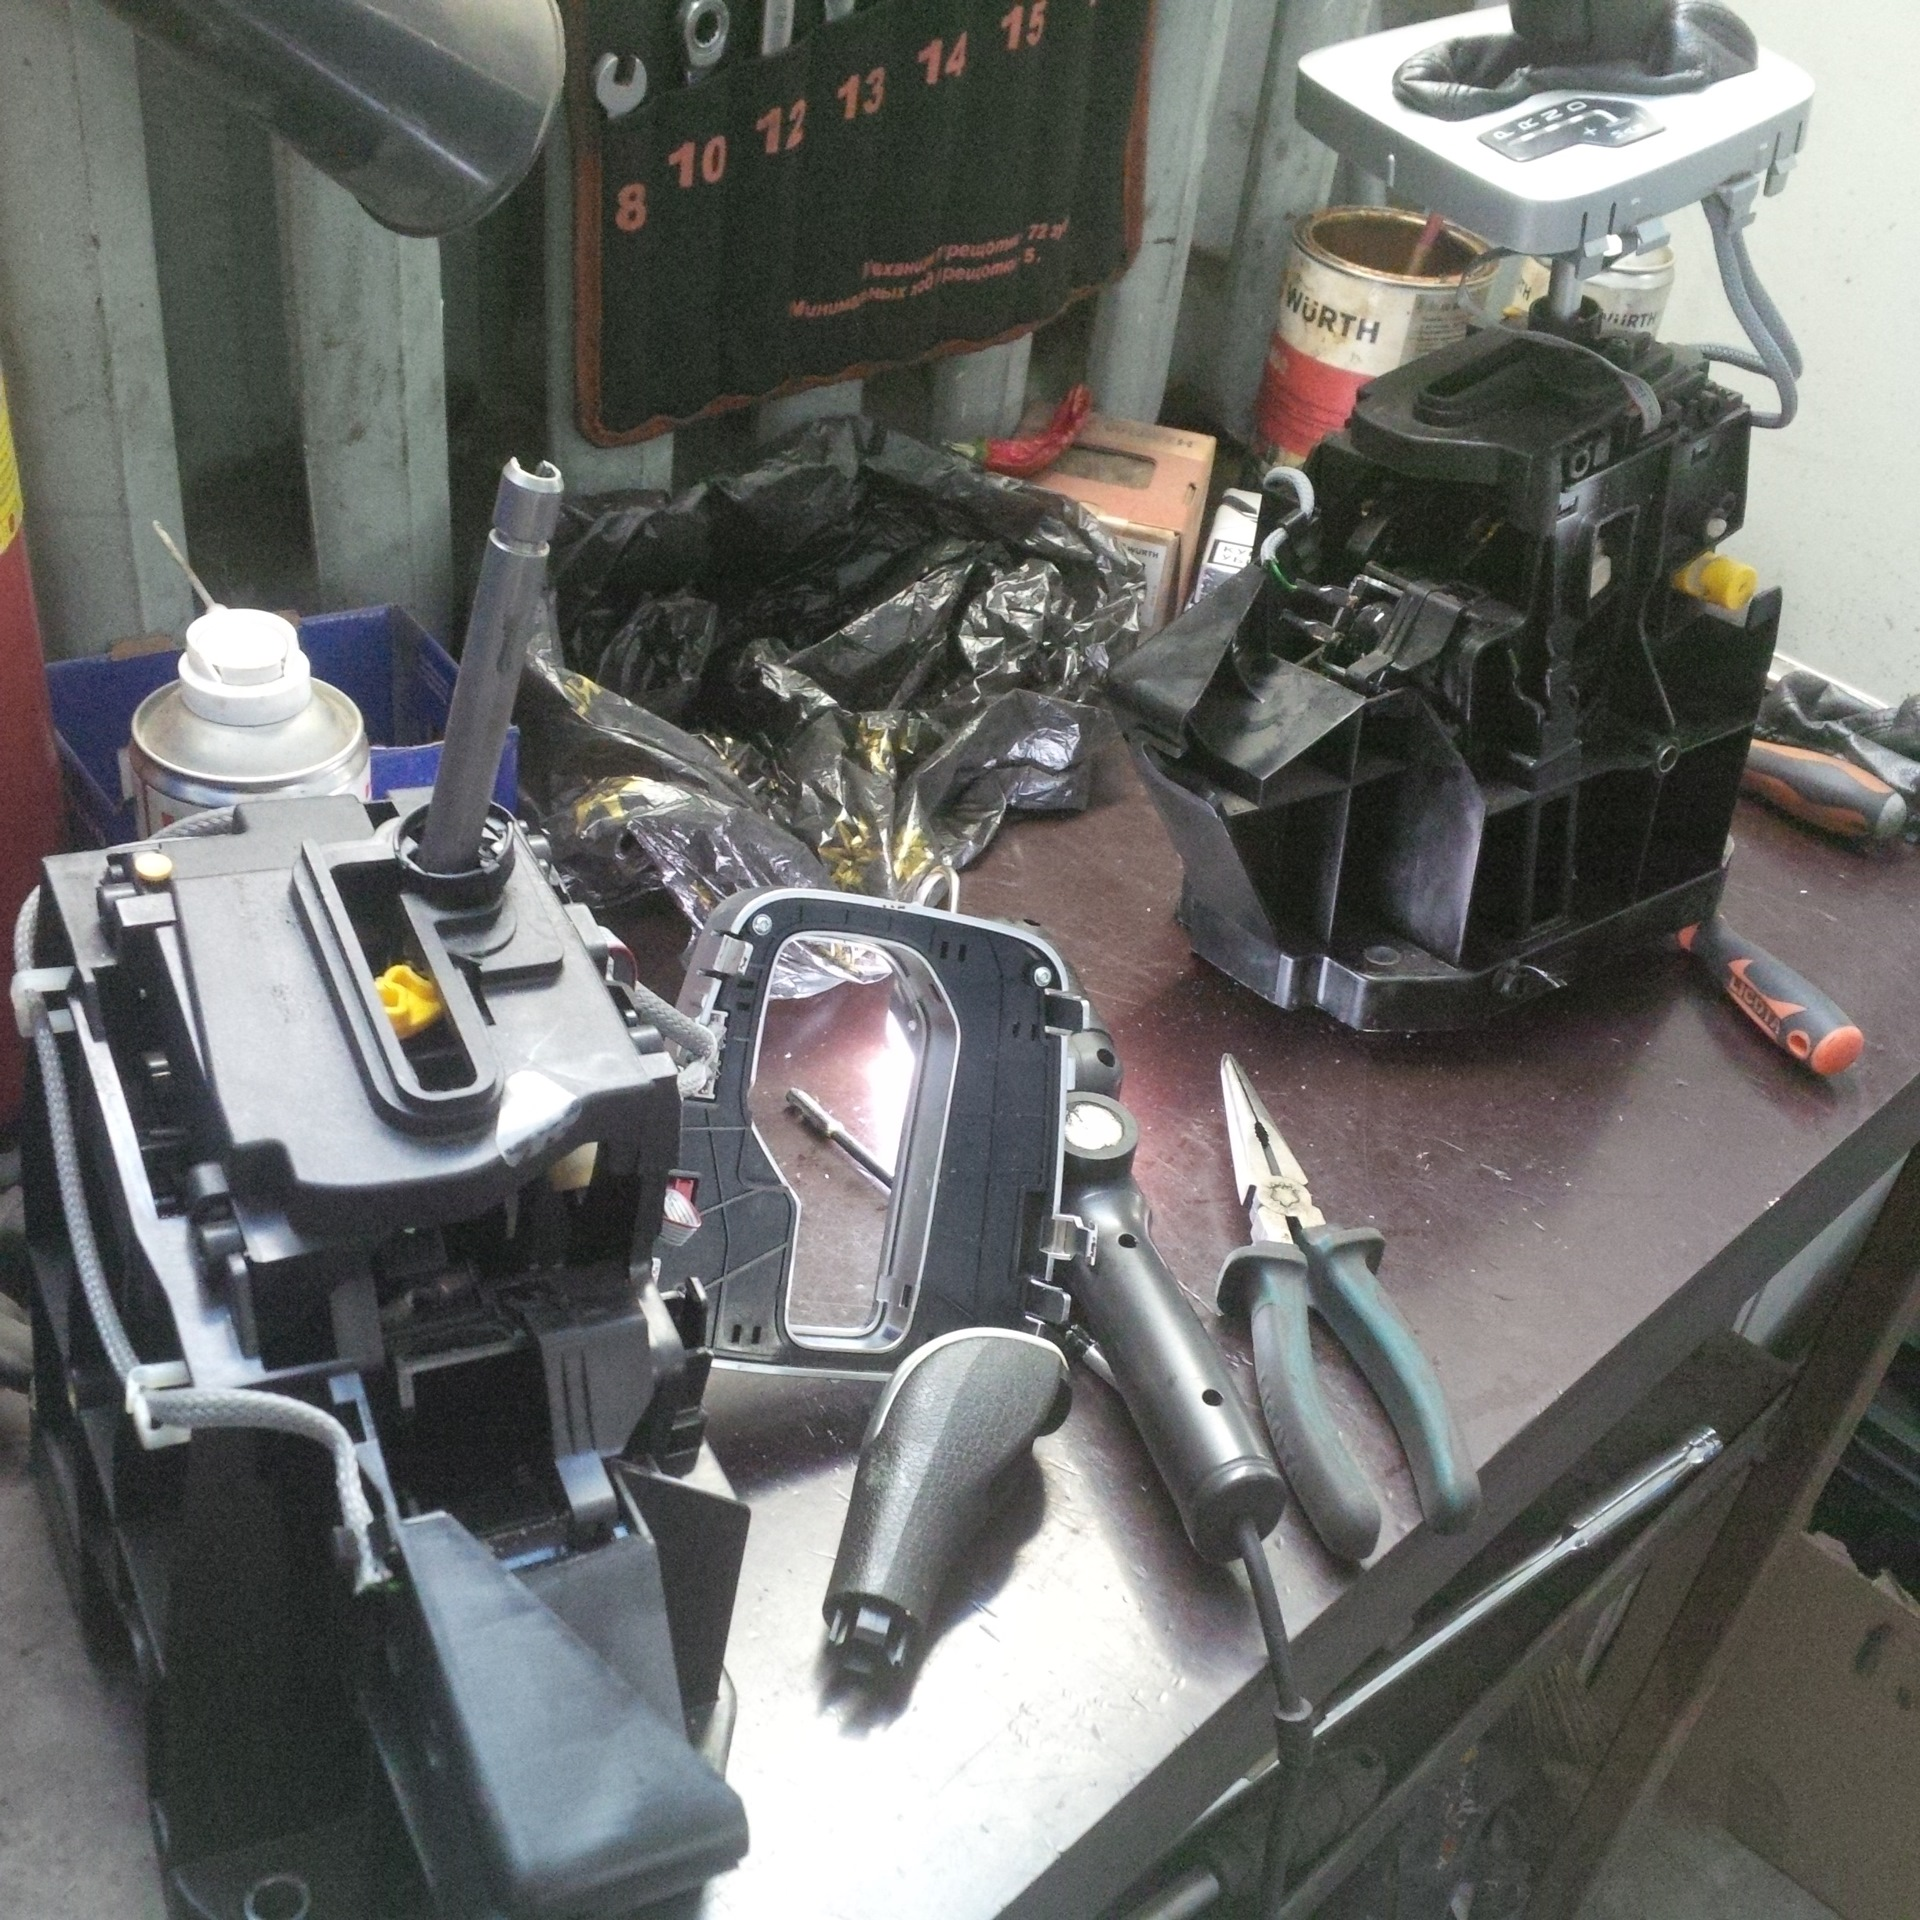 GEAR SELECTOR SERVICE REQUIRED 02 FINAL — Volvo XC90, 3 2 л